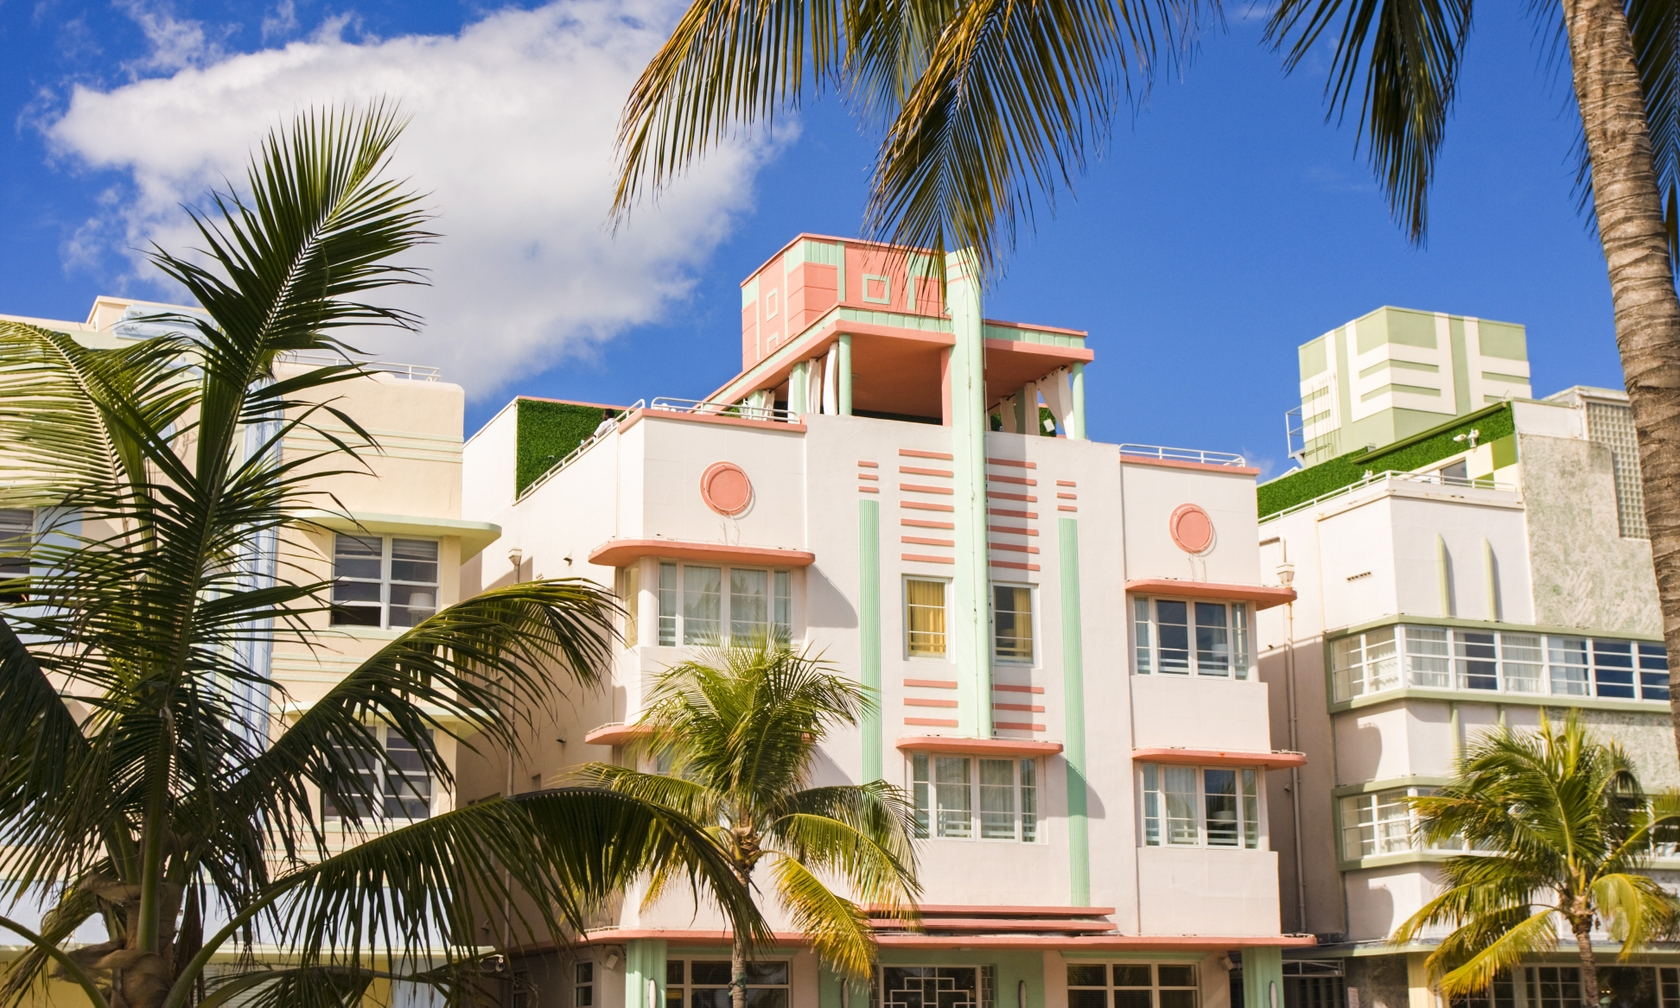 Vacation rentals in South Beach, Miami Beach